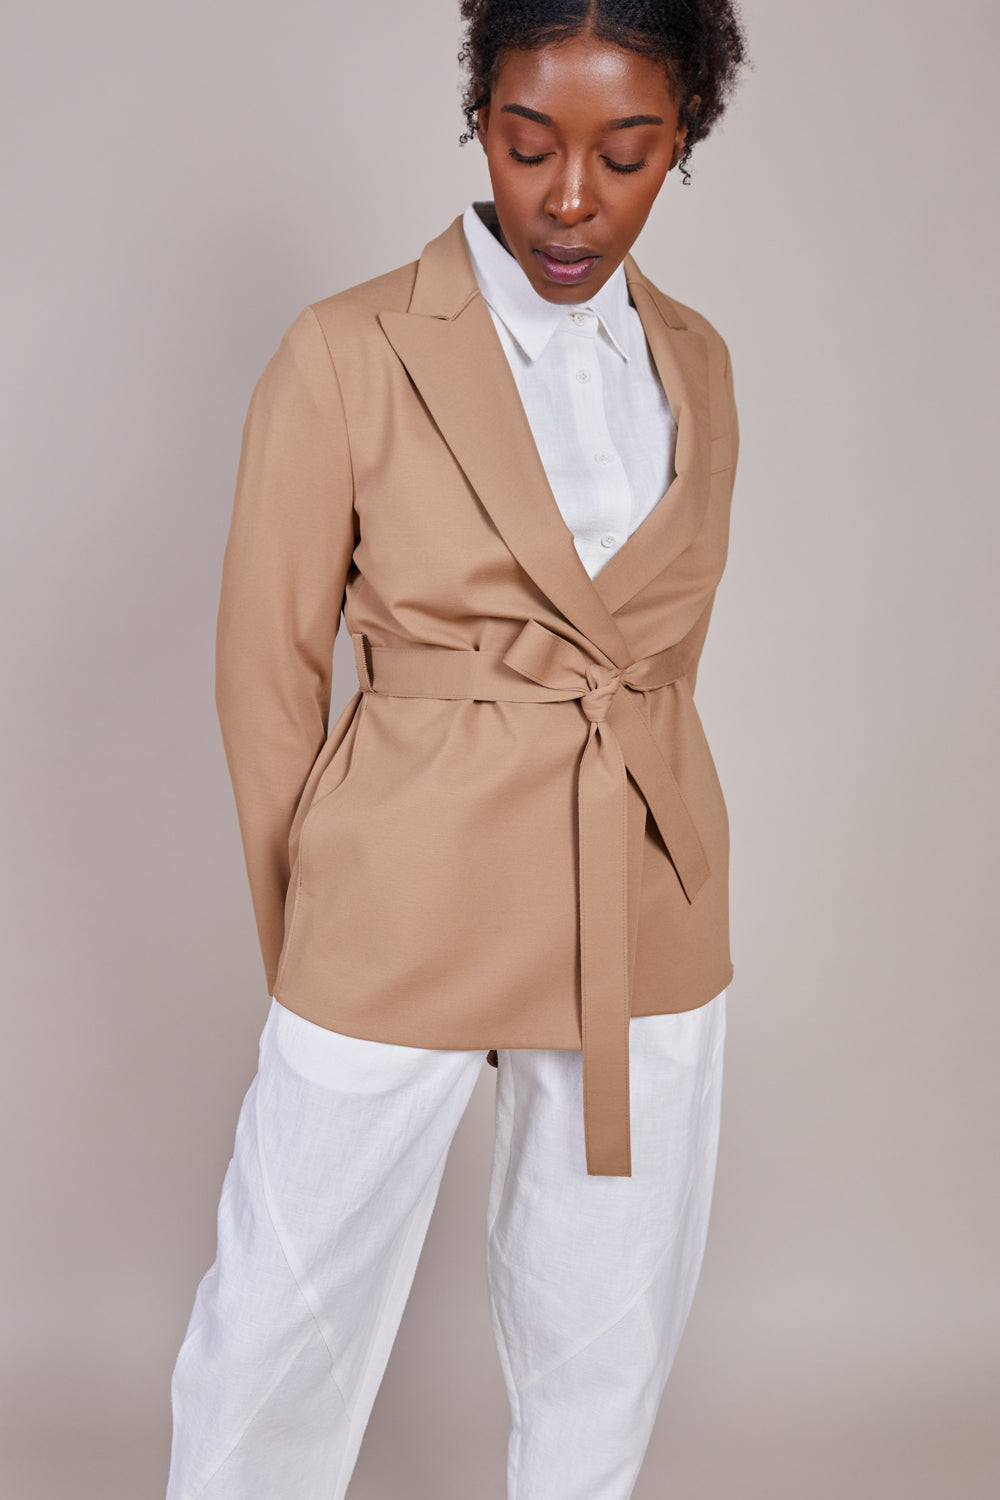 Harris Wharf London Double Breasted Belted Blazer in Tan - Vert & Vogue